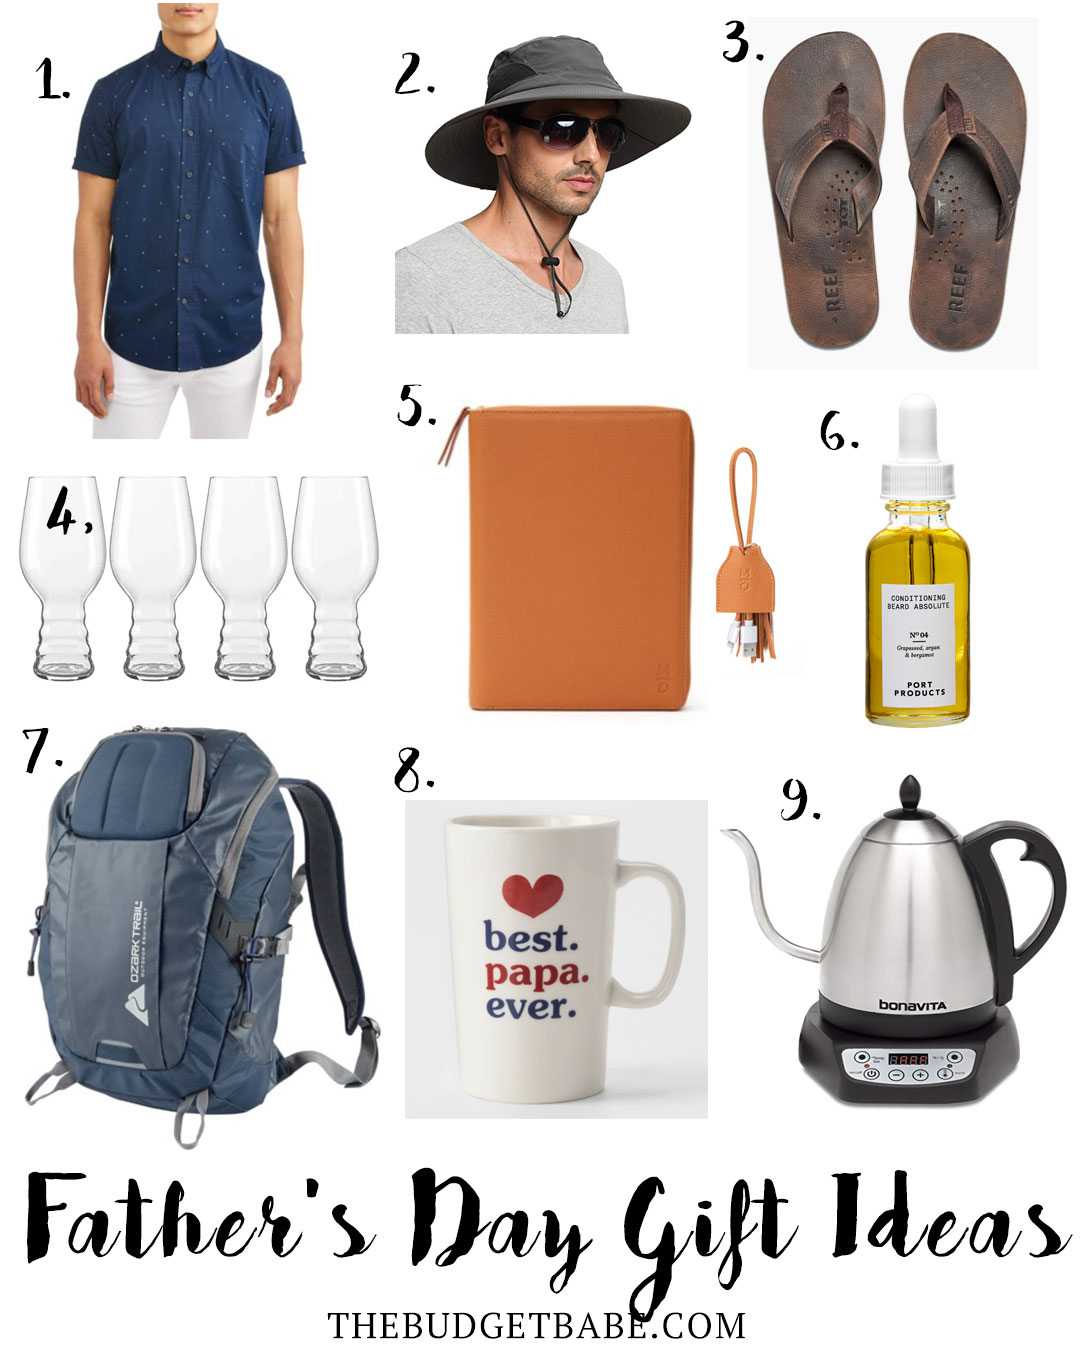 Father's Day gift ideas for any budget